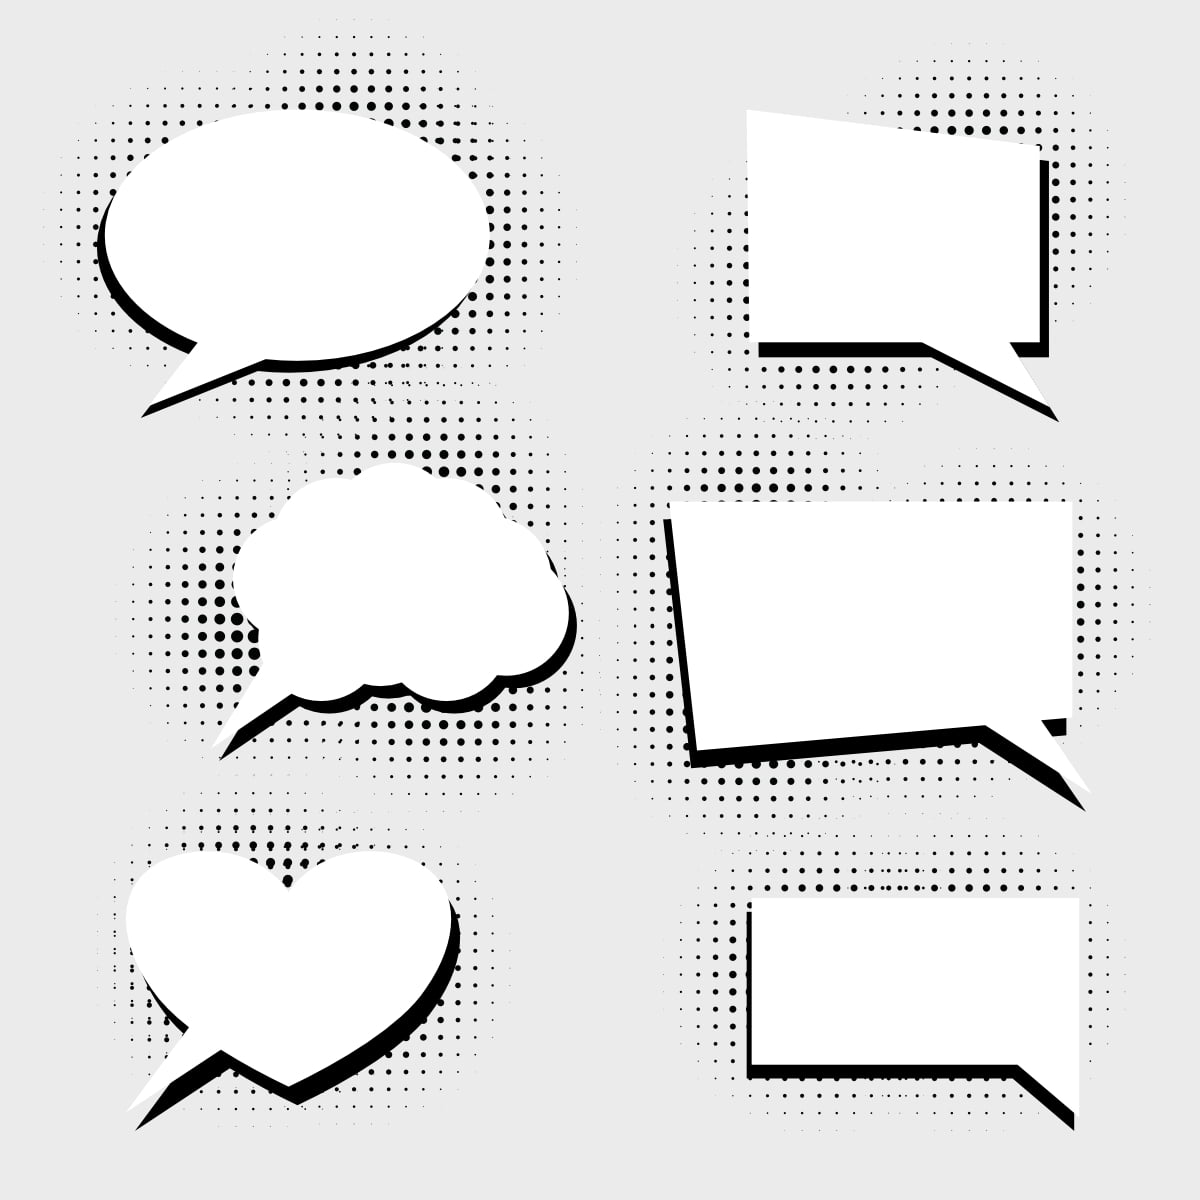 Free Speech bubbles with halftone dots